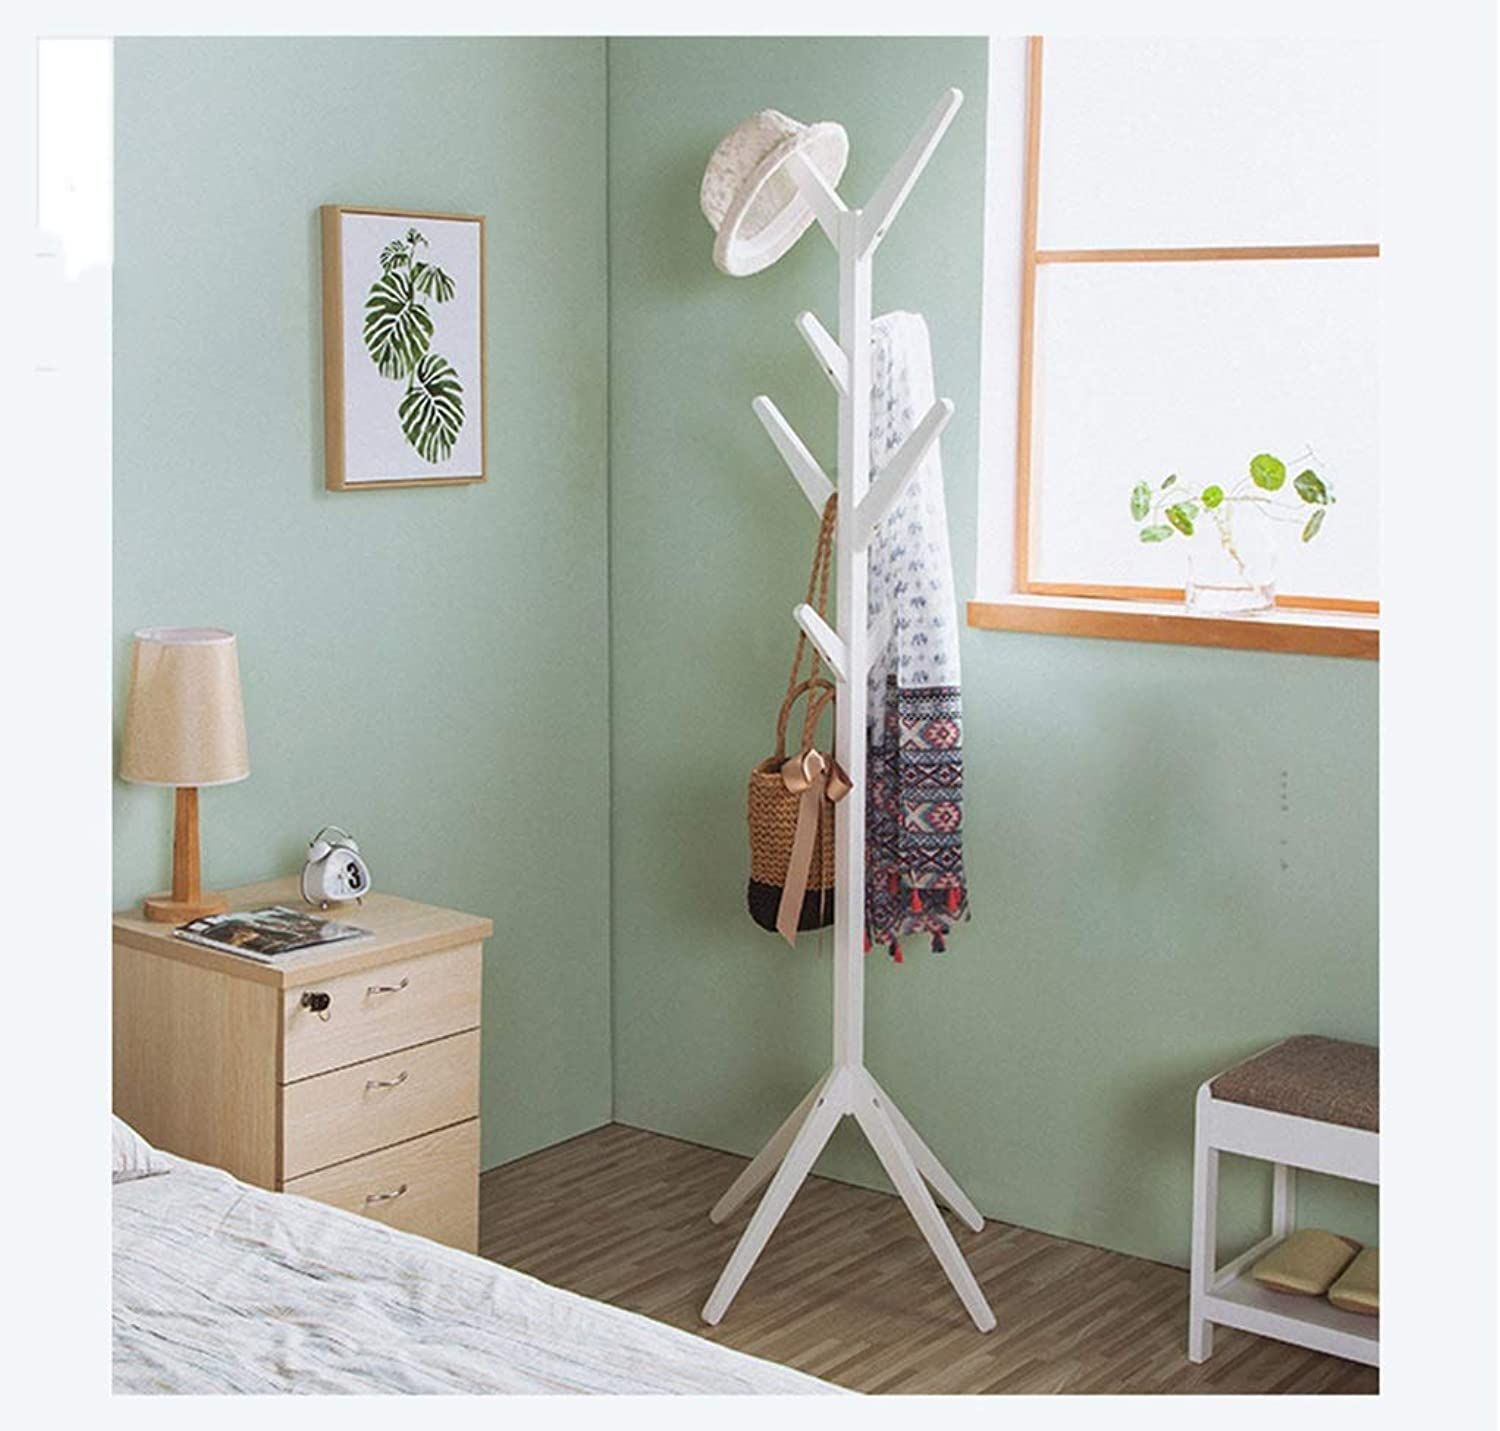 XIAOLONG Coat Stand Standing Bamboo Tree-Shaped Display Coat Stand with 4 Tiers 8 Hooks and Solid Feet for Clothes Scarves and Hats -45 (color   White)